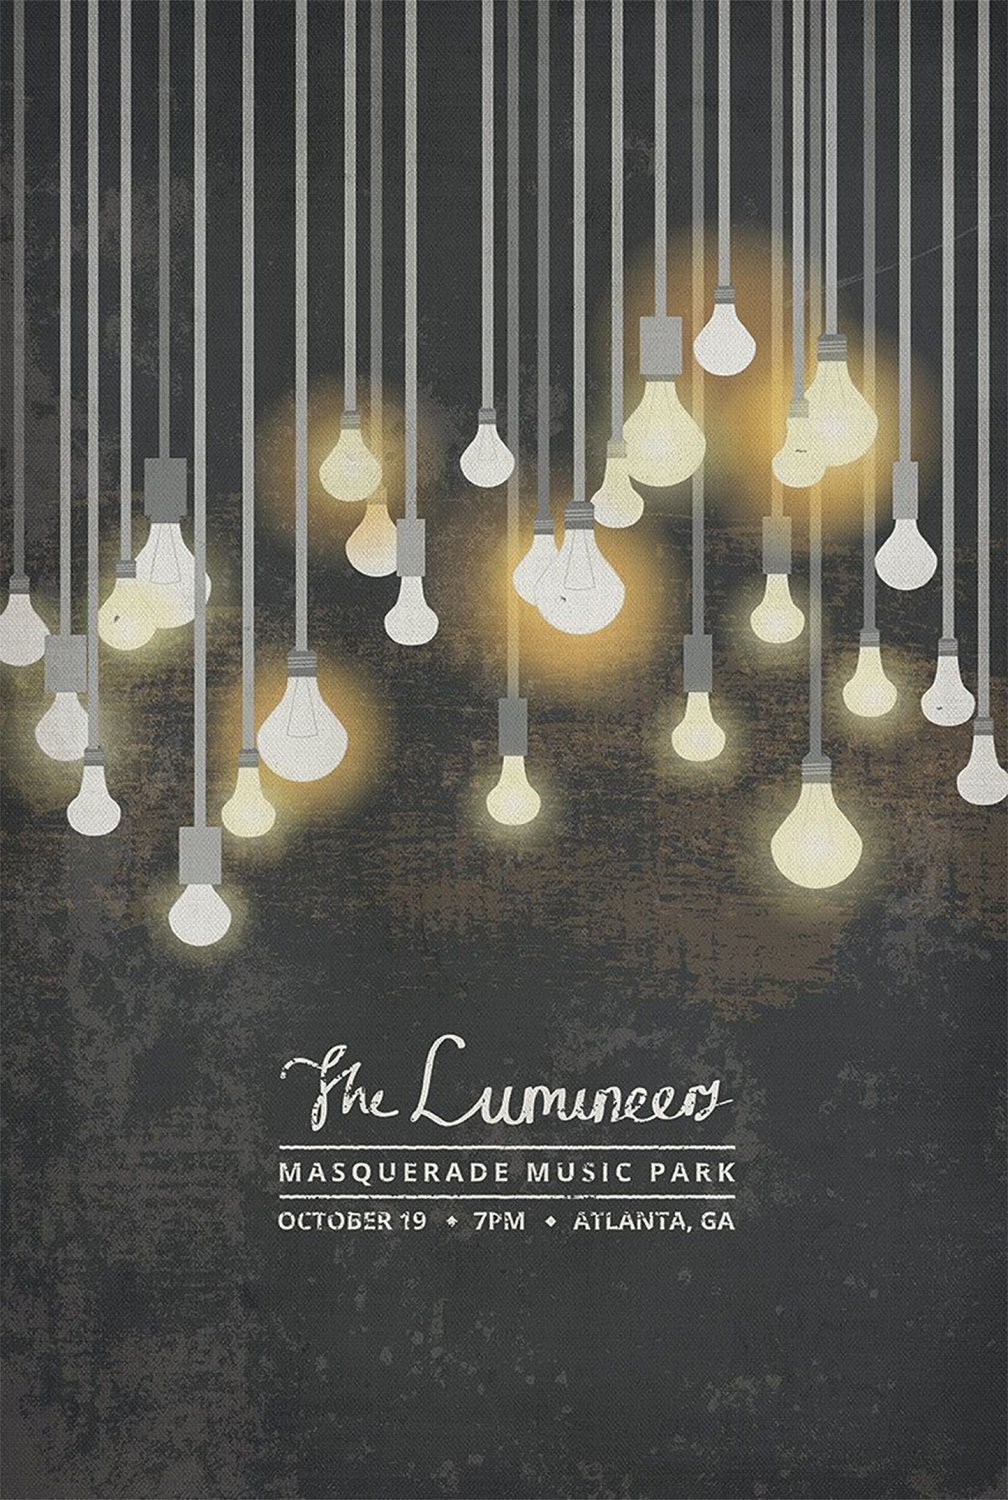 The Lumineers Tour 18x28 inches Poster Print